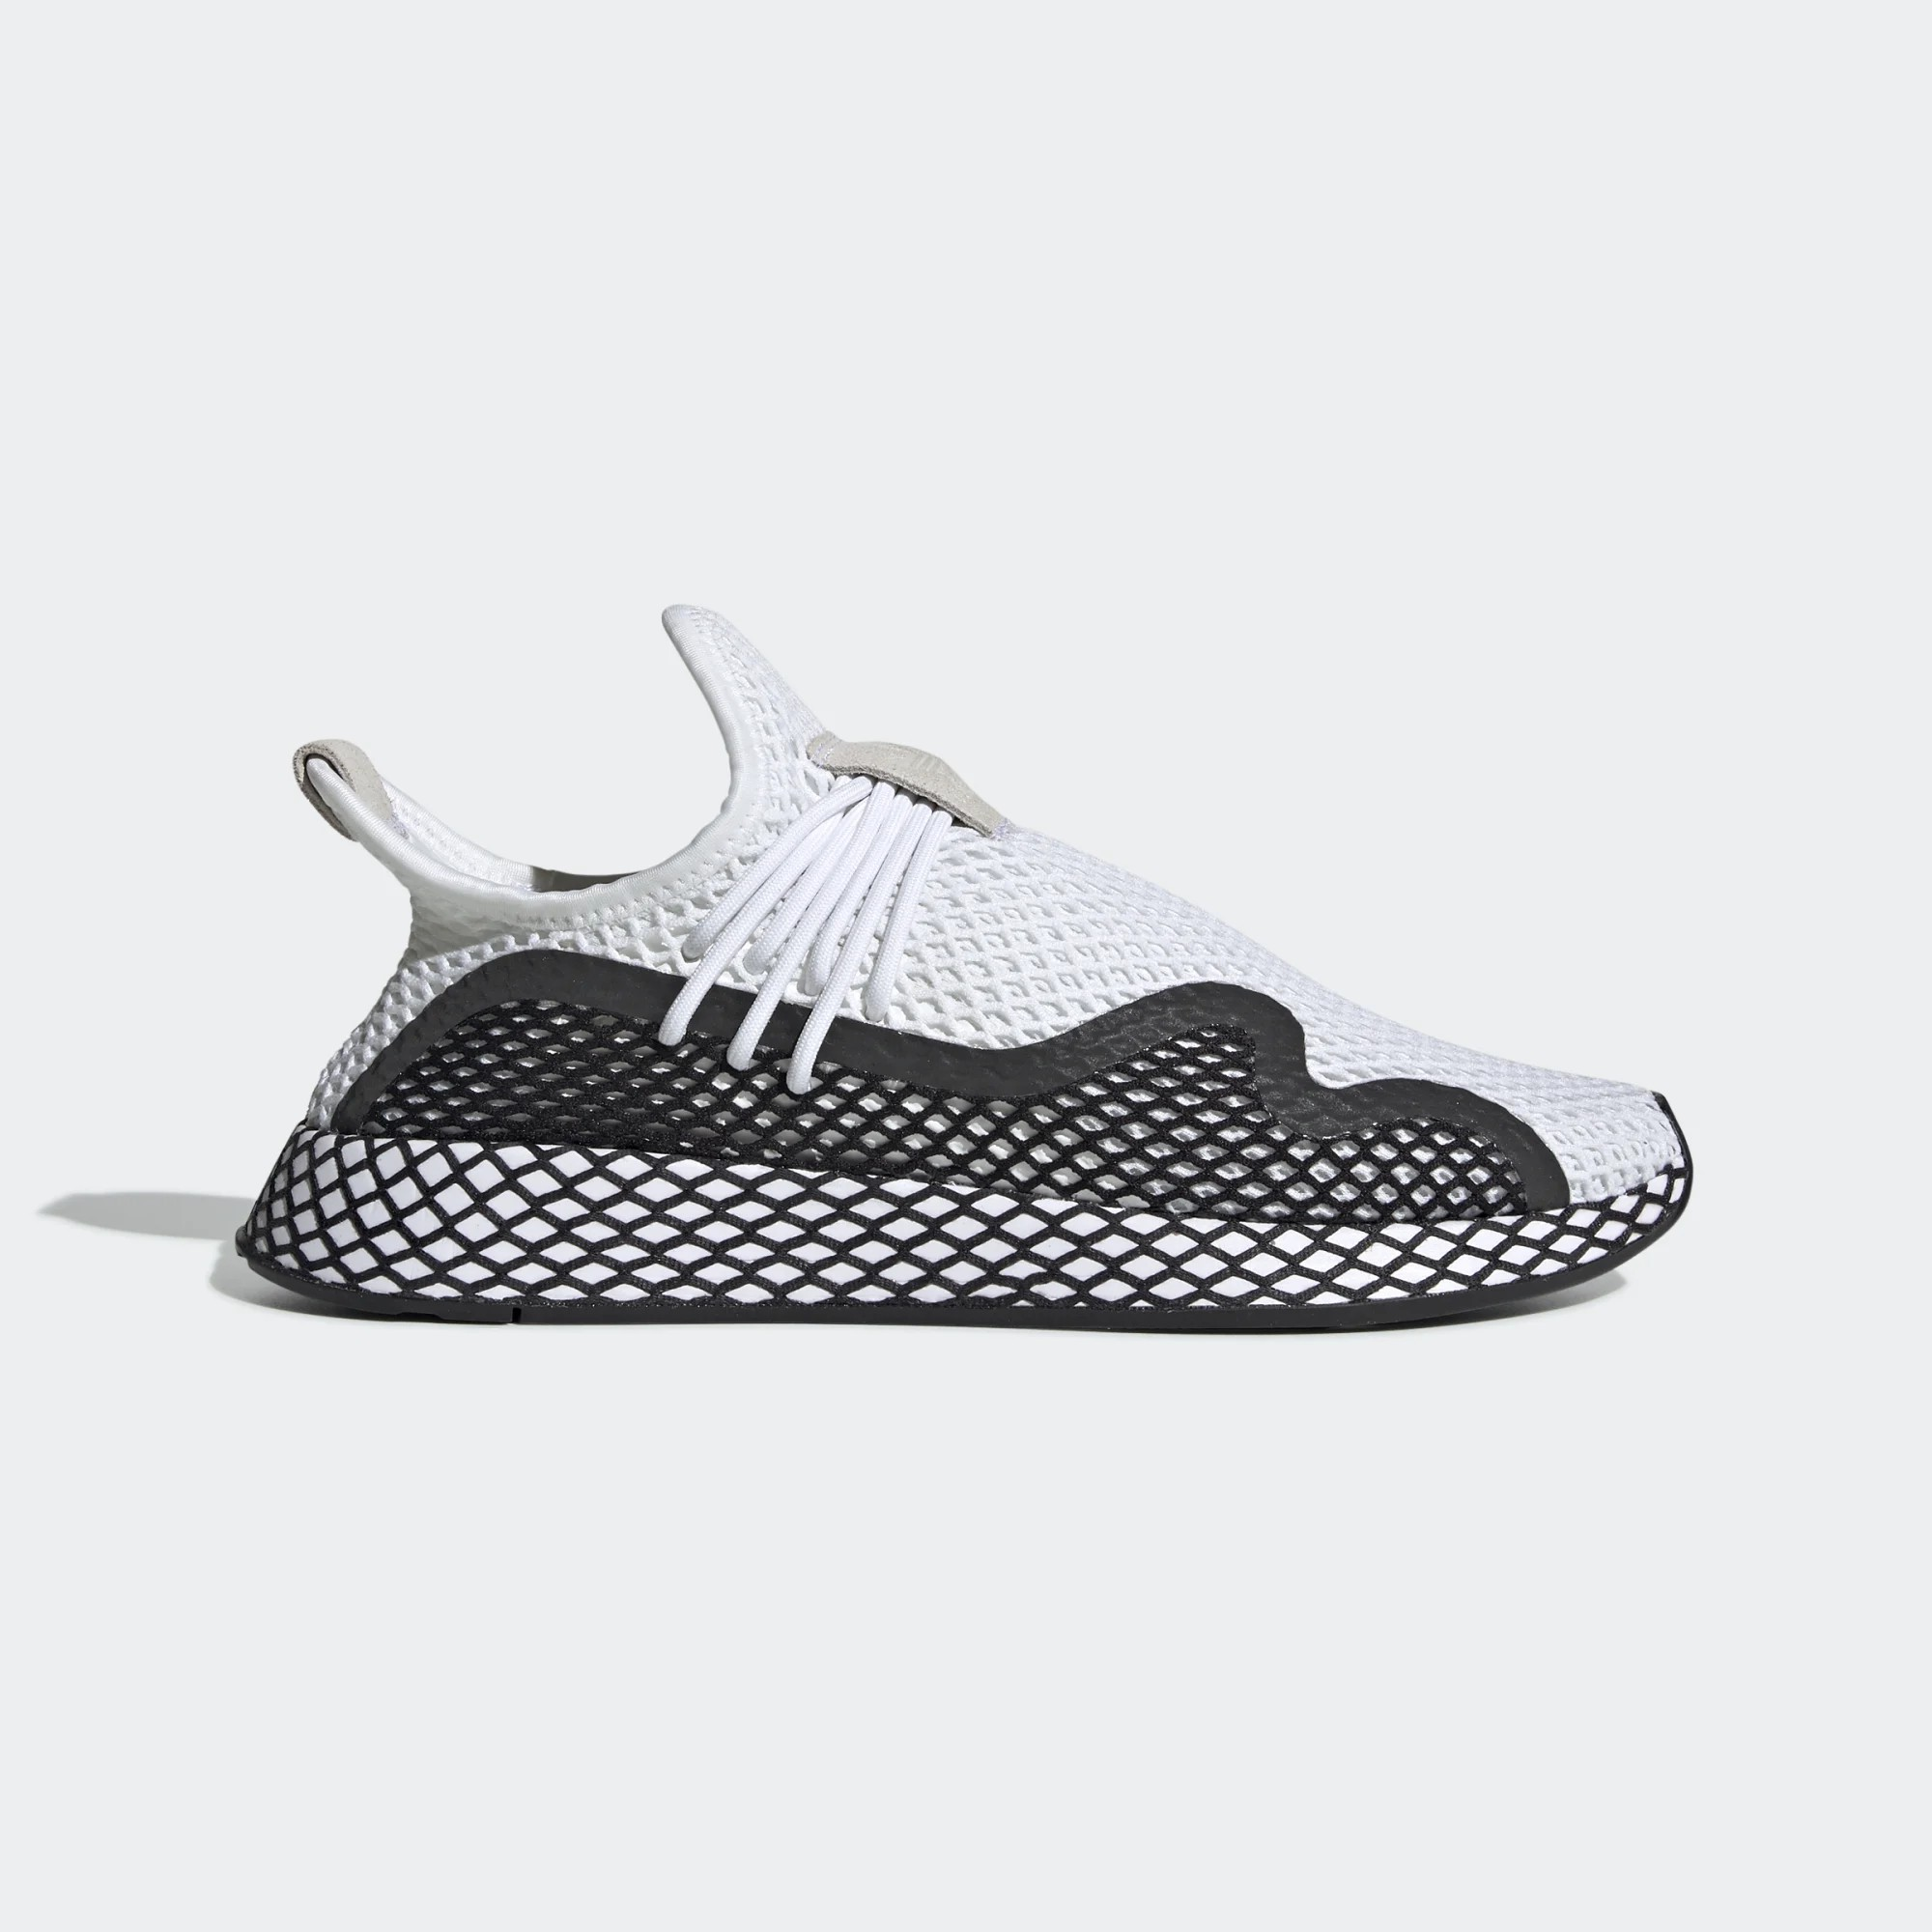 adidas Originals Deerupt New Runner White Sneakers BD7874